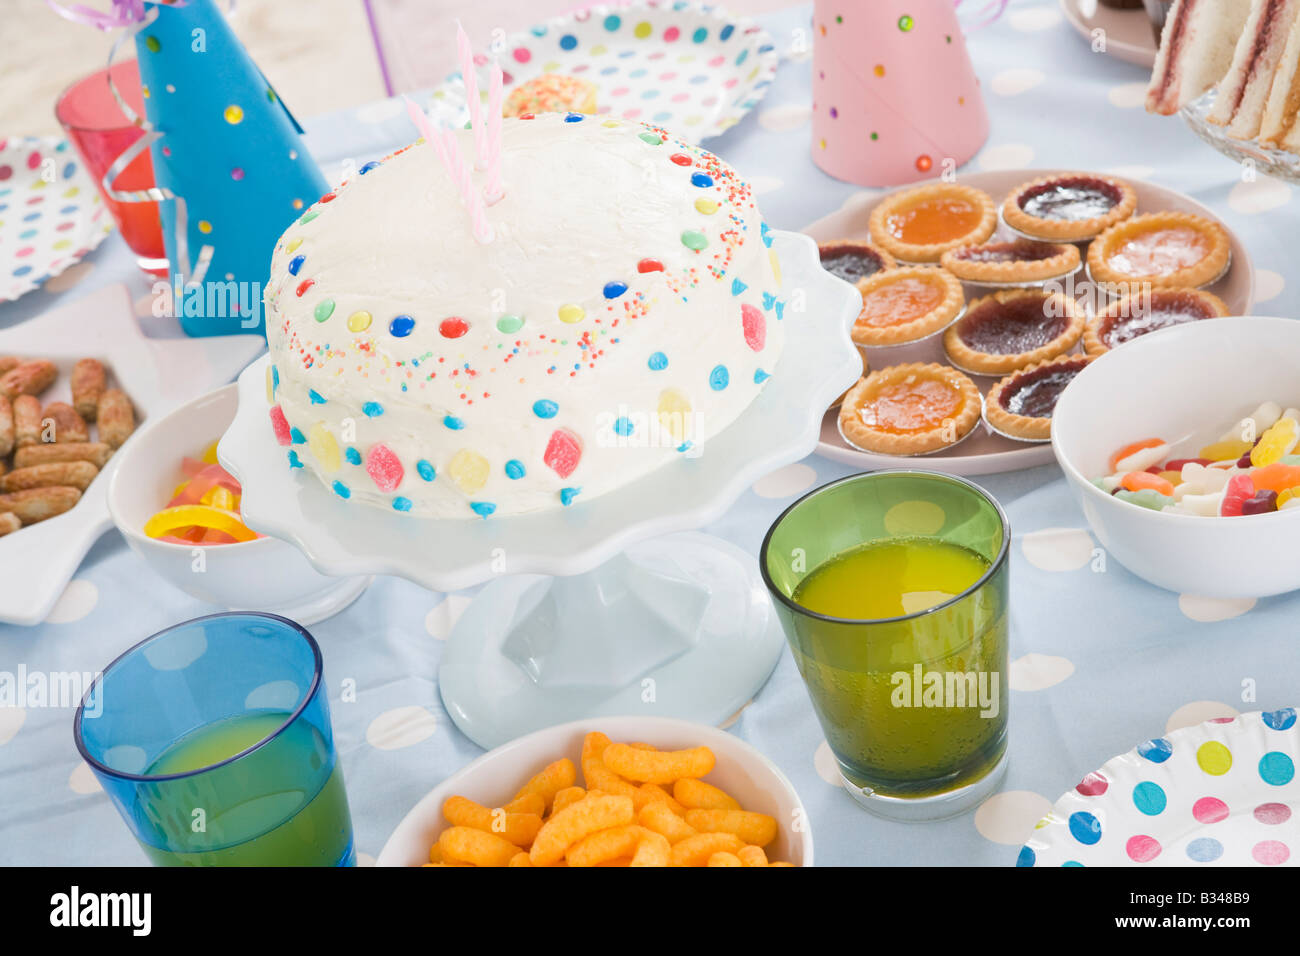 Birthday party table setting with food - Stock Image